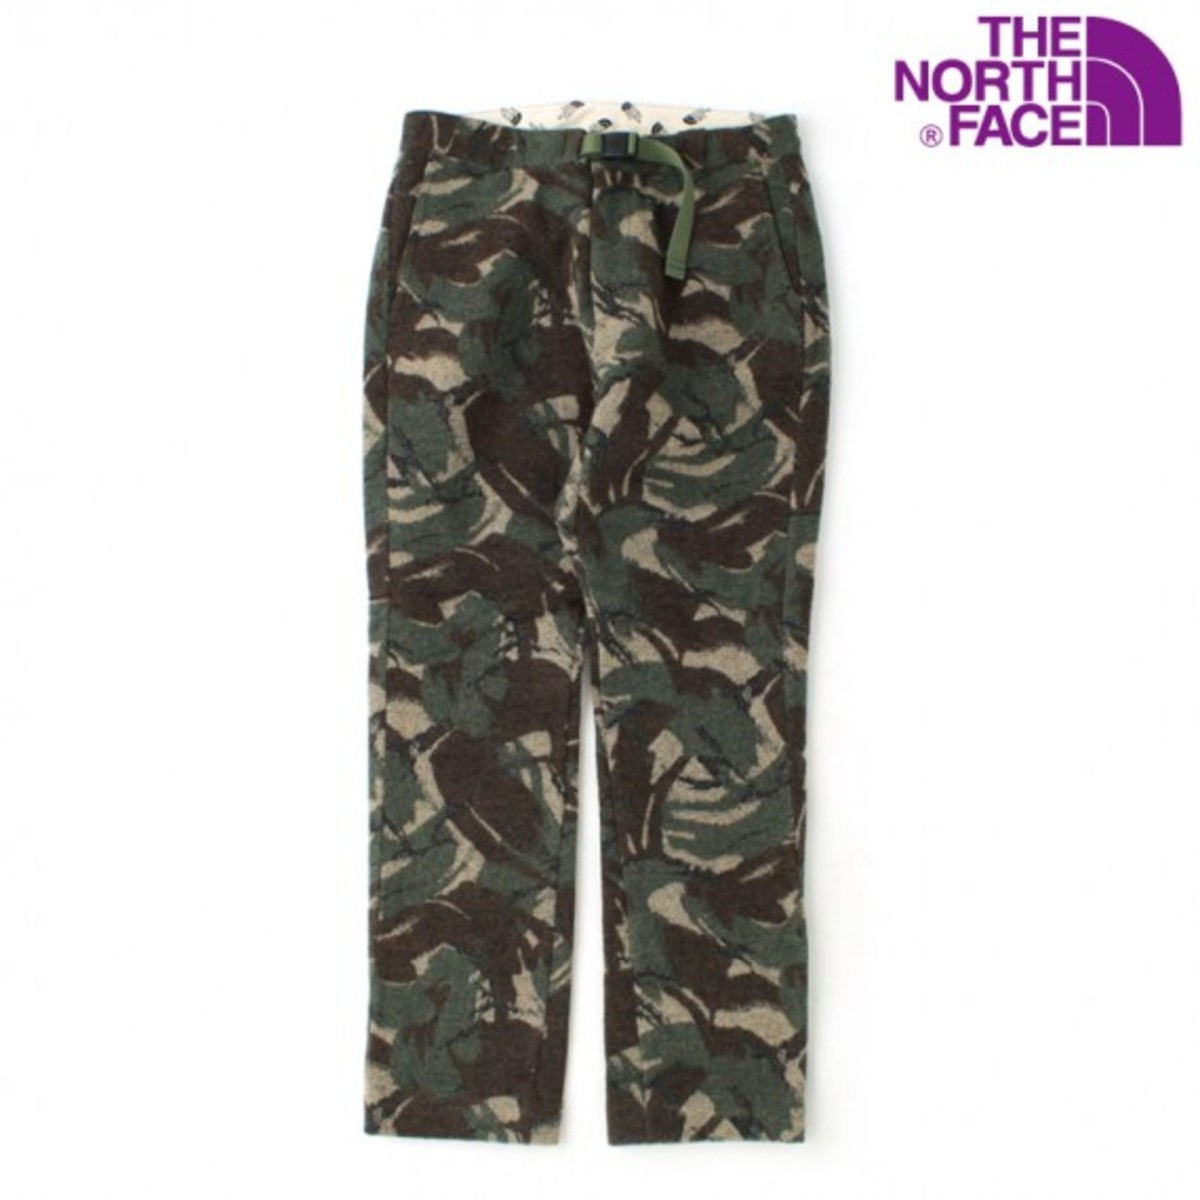 the-north-face-purple-label-wool-pants-01